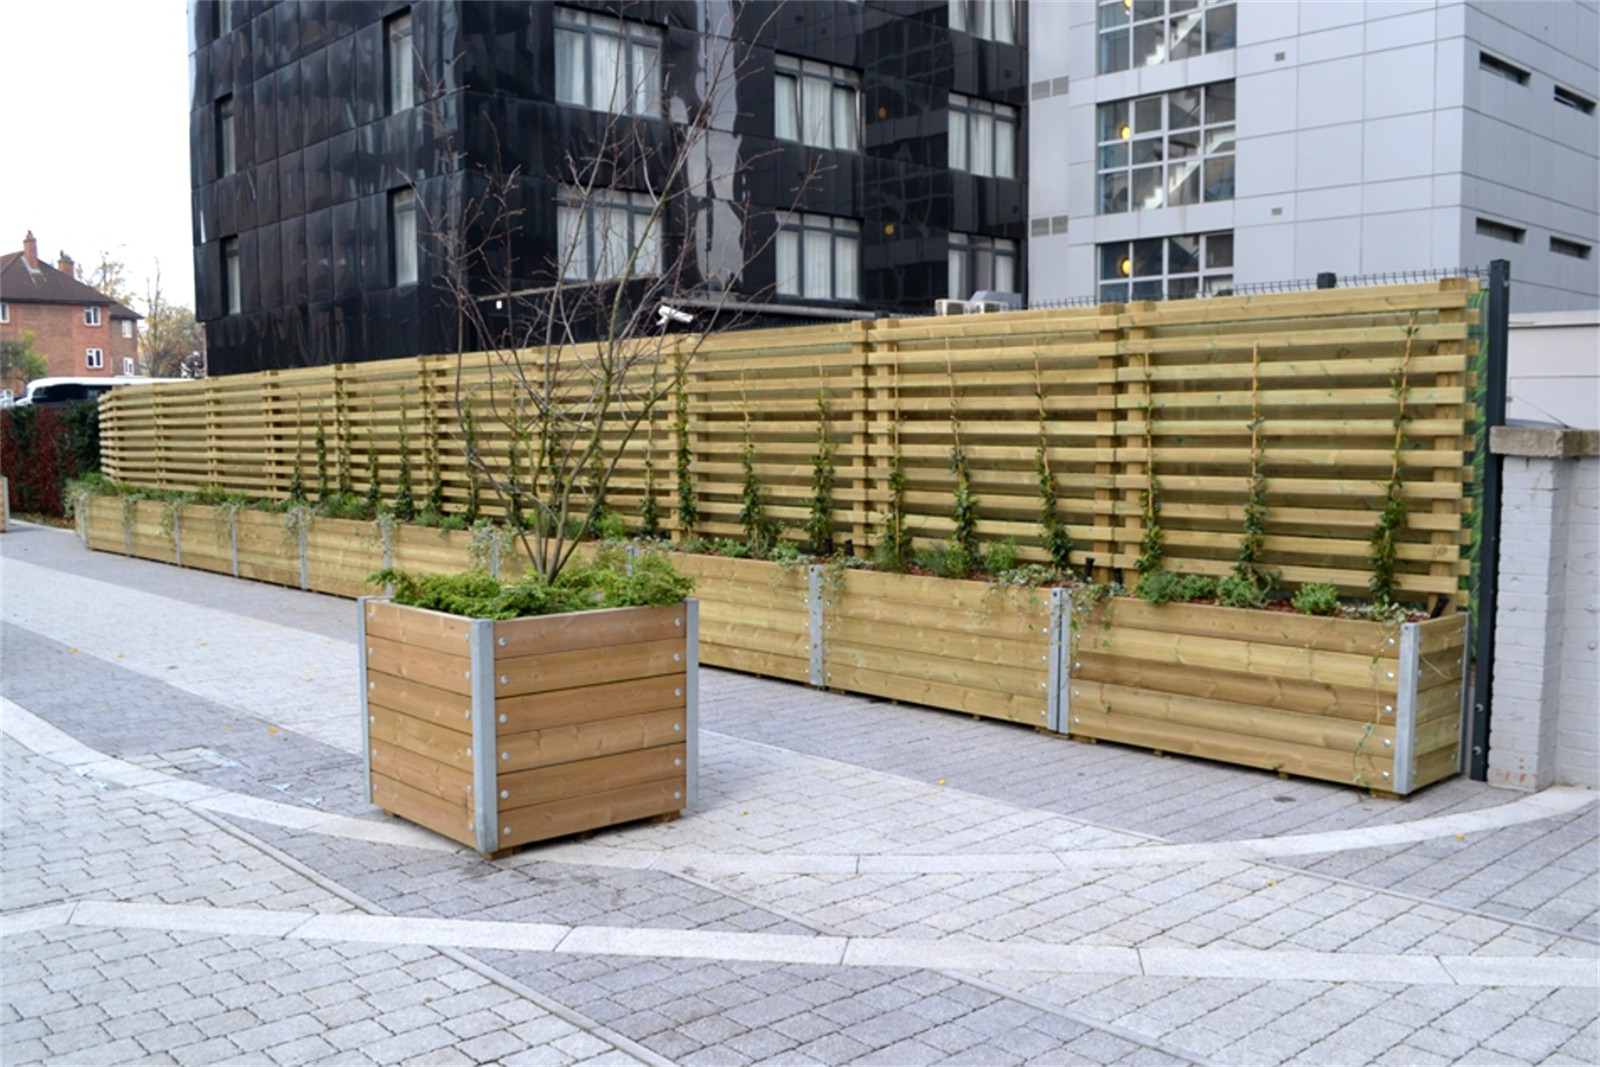 40p14 - Mews long barrier planters with slatted screens